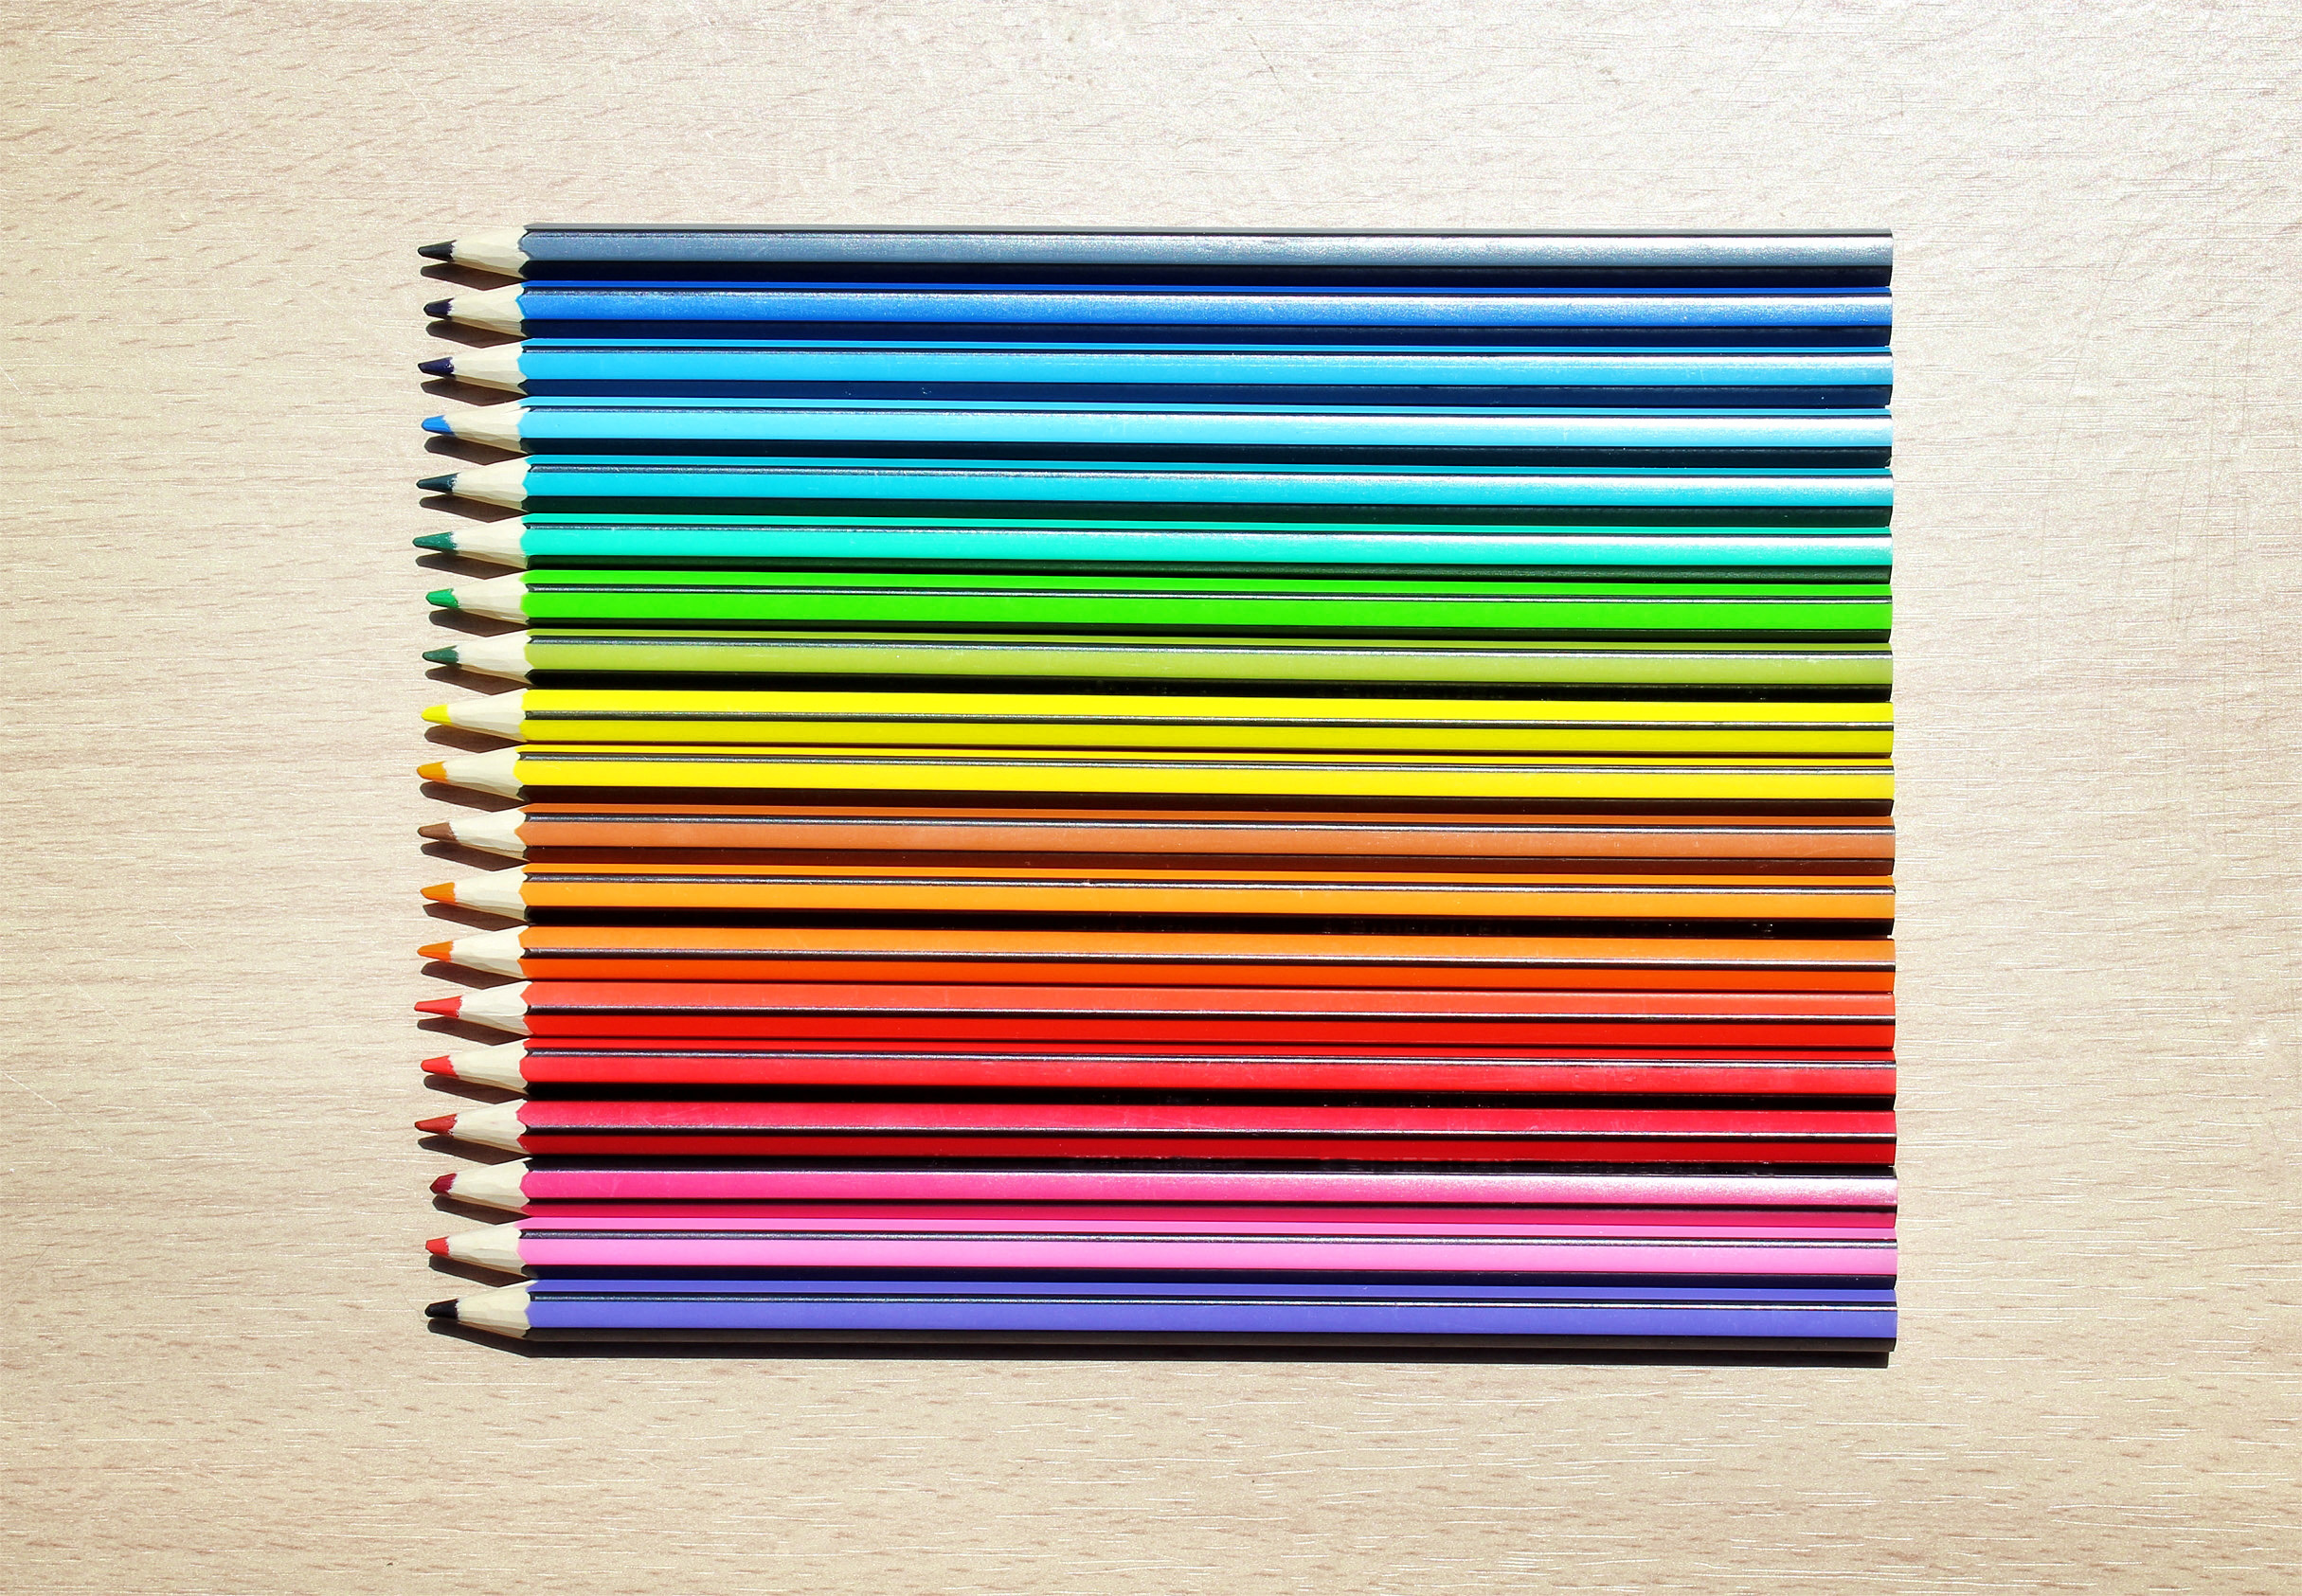 Colored Pencils Aligned, Abstract, School, Nobody, Object, HQ Photo